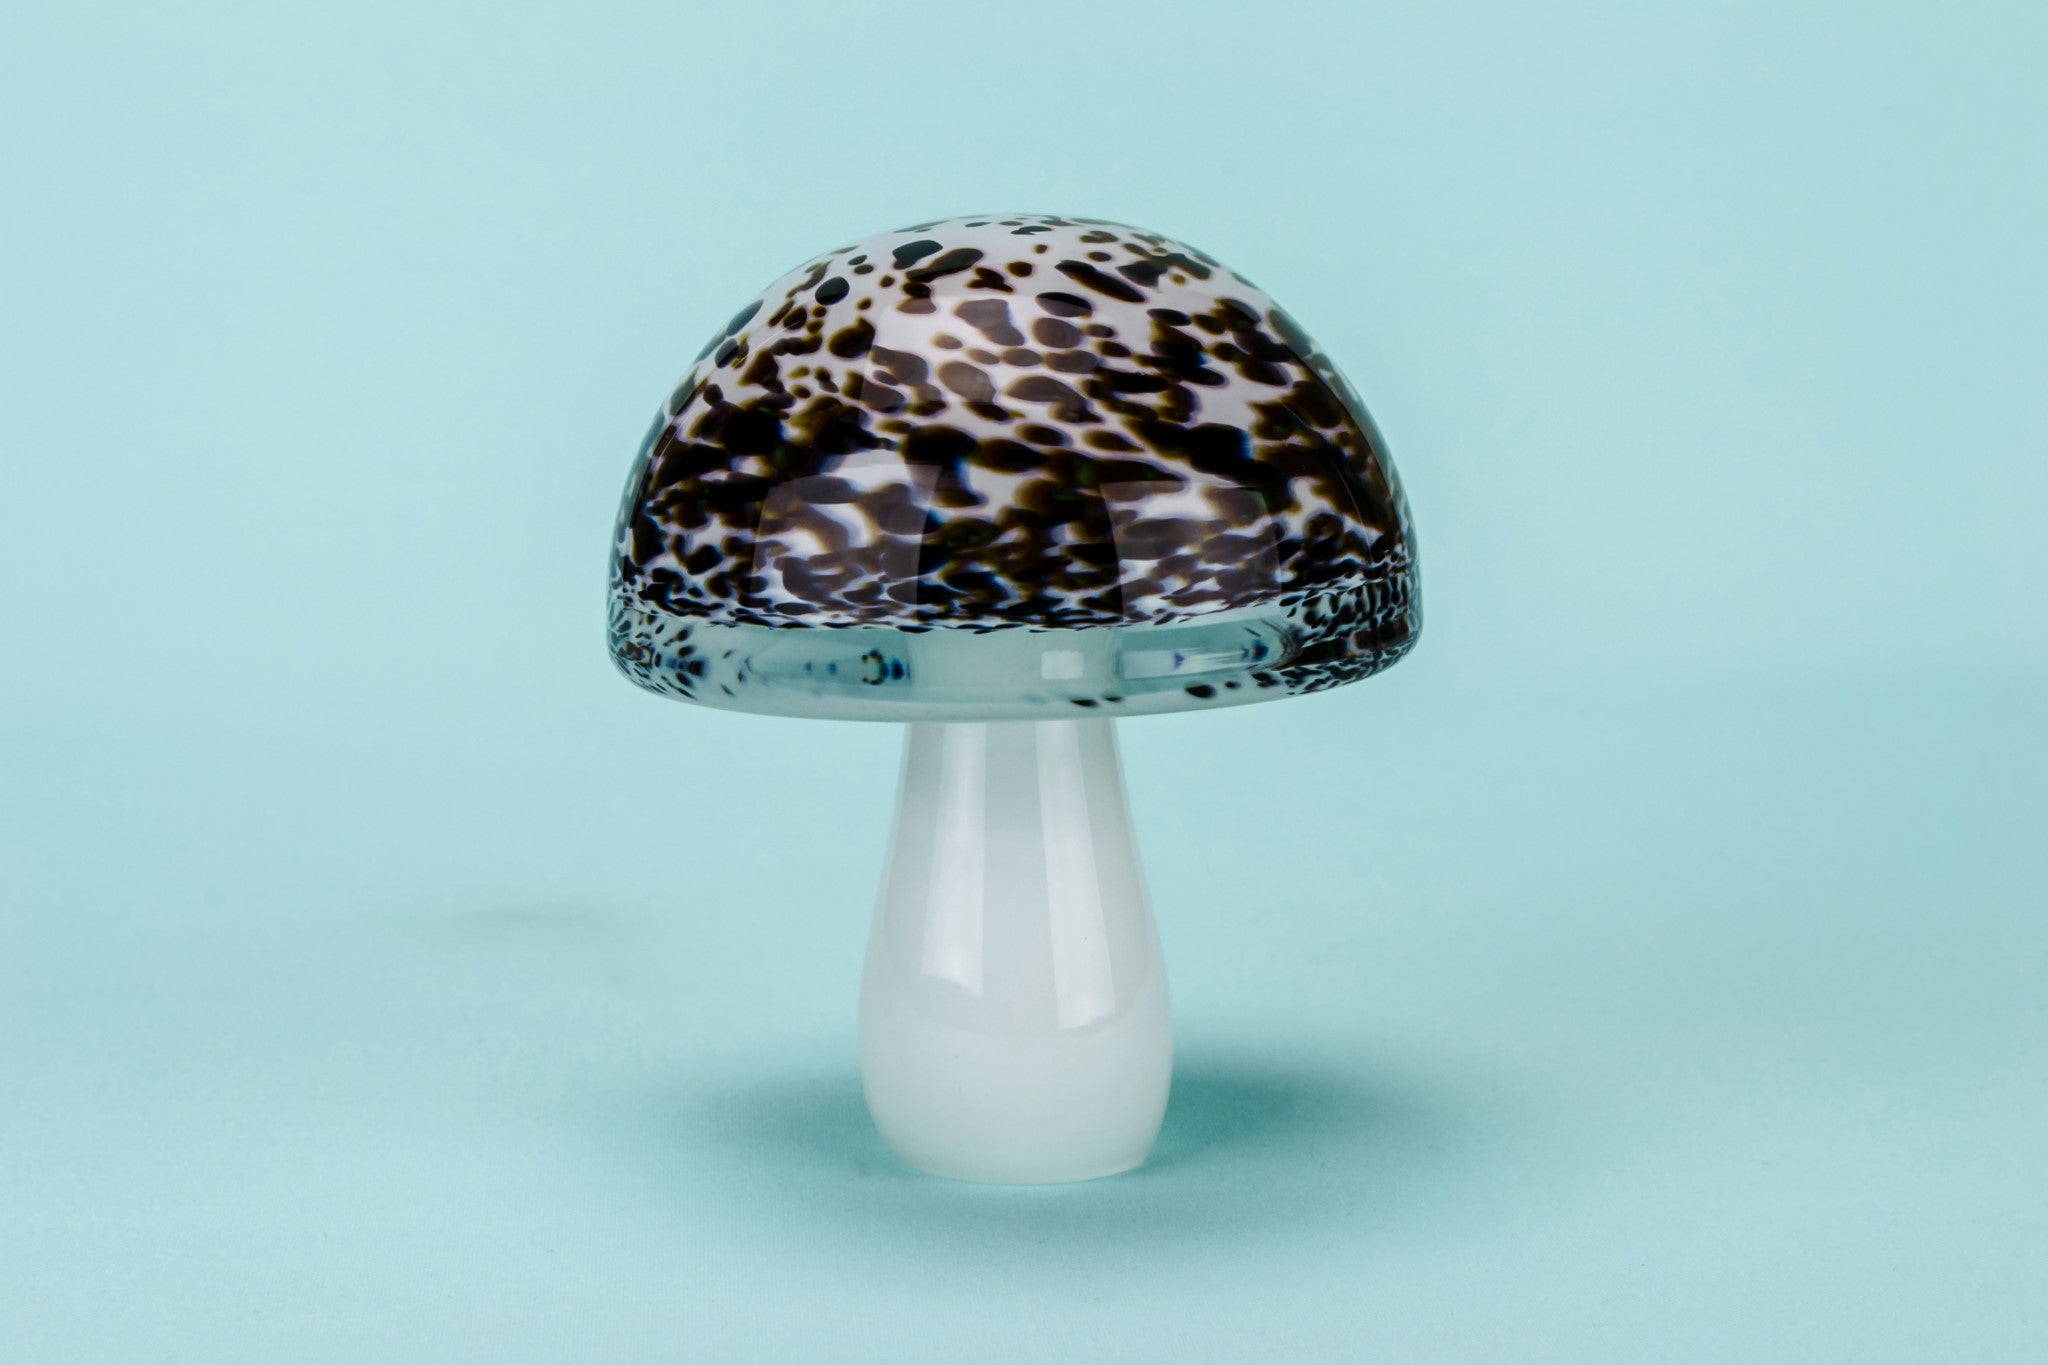 Glass Popular Brand Wedgwood Glass Mushroom